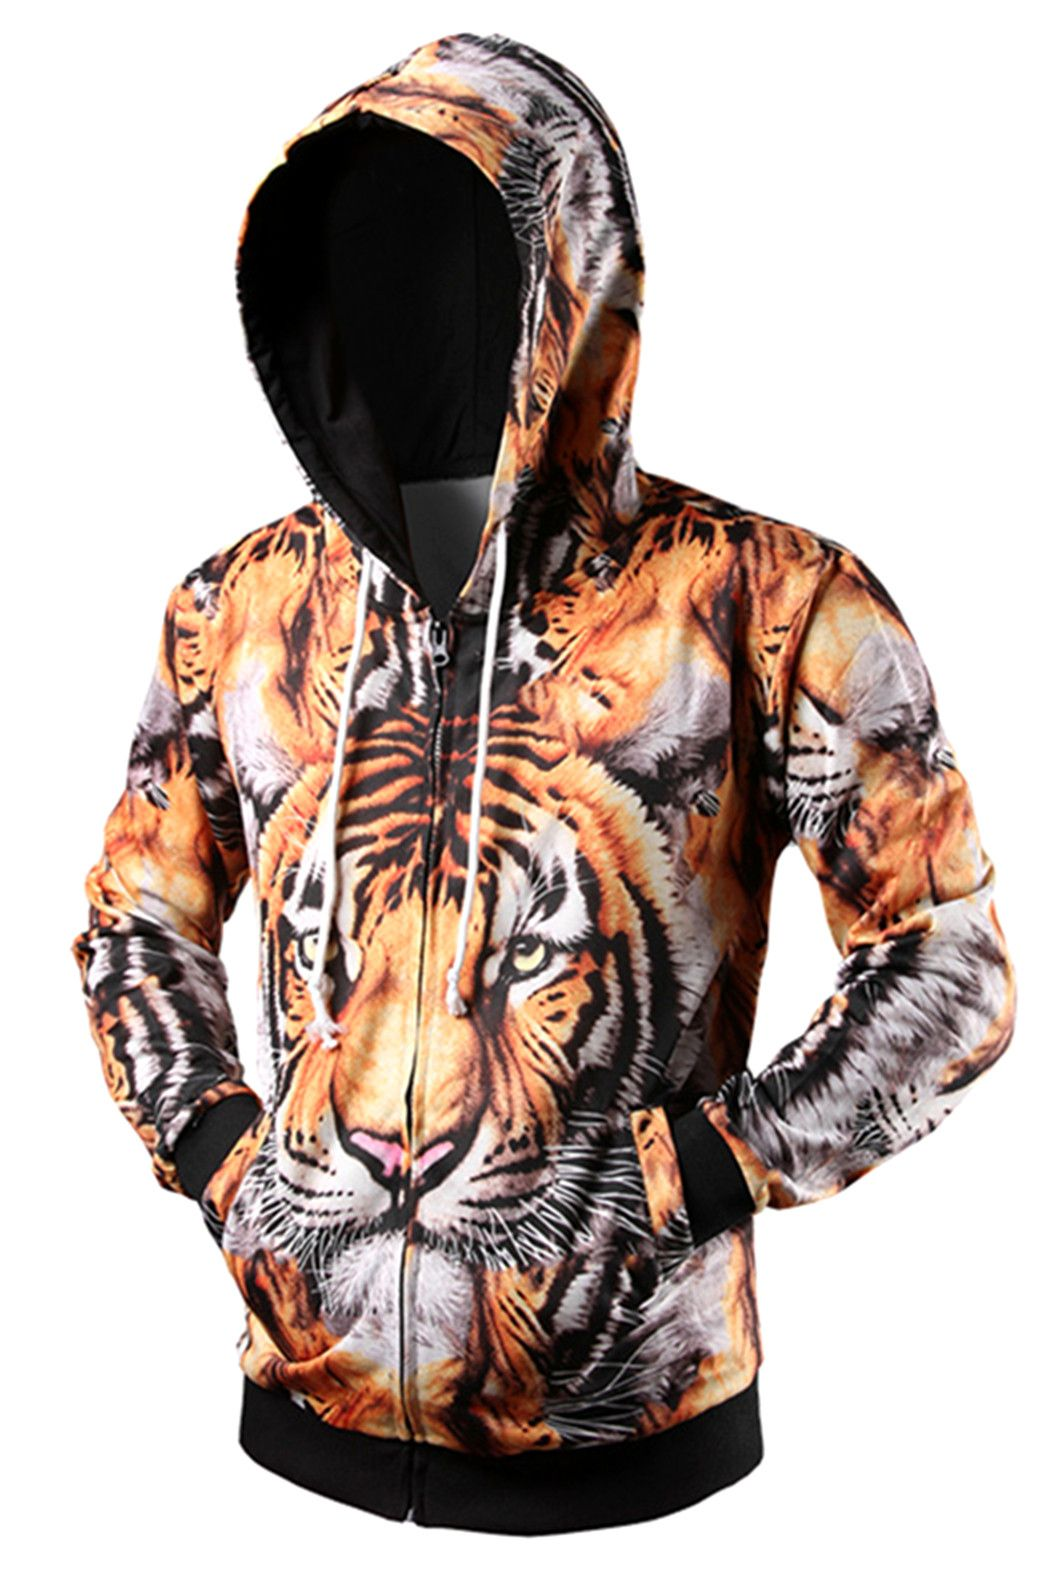 69806cb97bbb  23.33 Zipper Fly Tiger 3D Printed Cool Hoodie